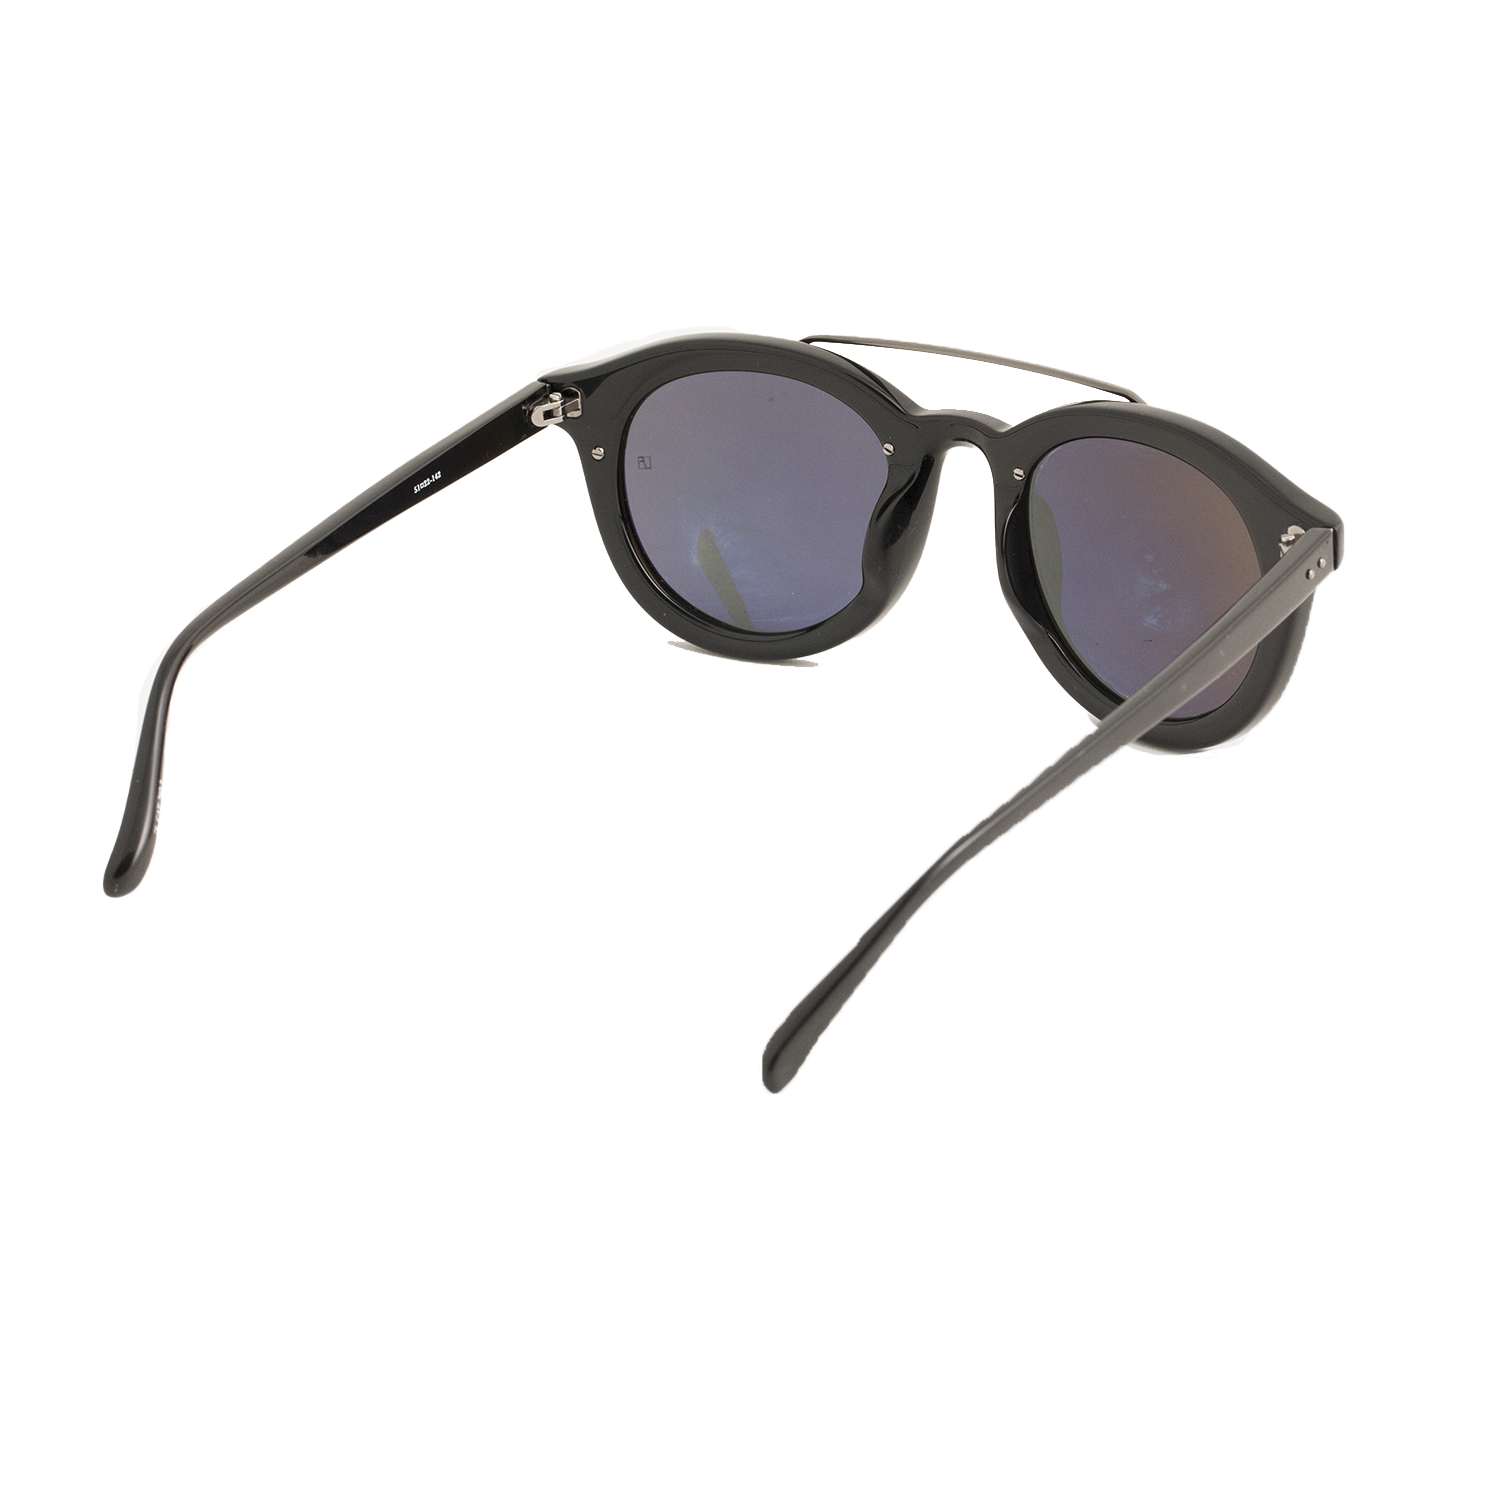 LINDA FARROW Oval Frame Sunglasses